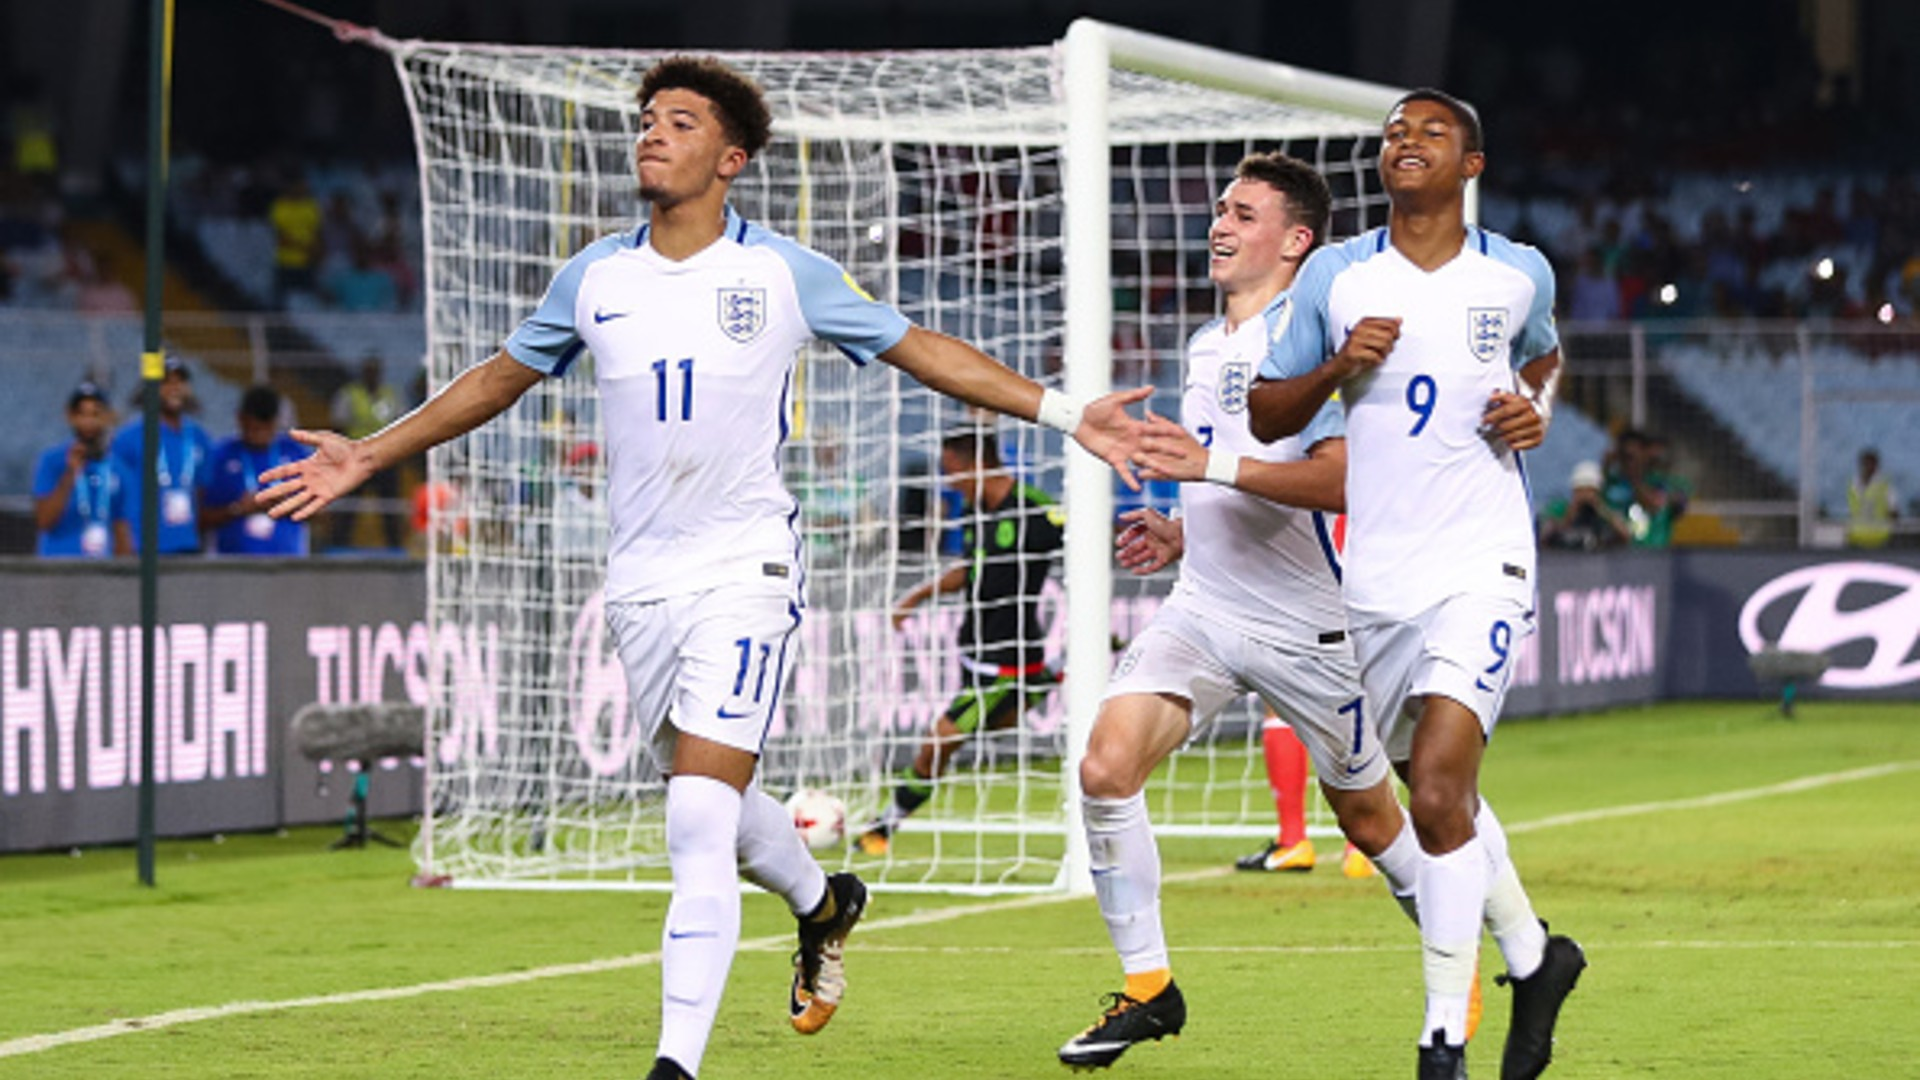 Foden, Sancho to Brewster: England's U17 World Cup winners - Where are they now?